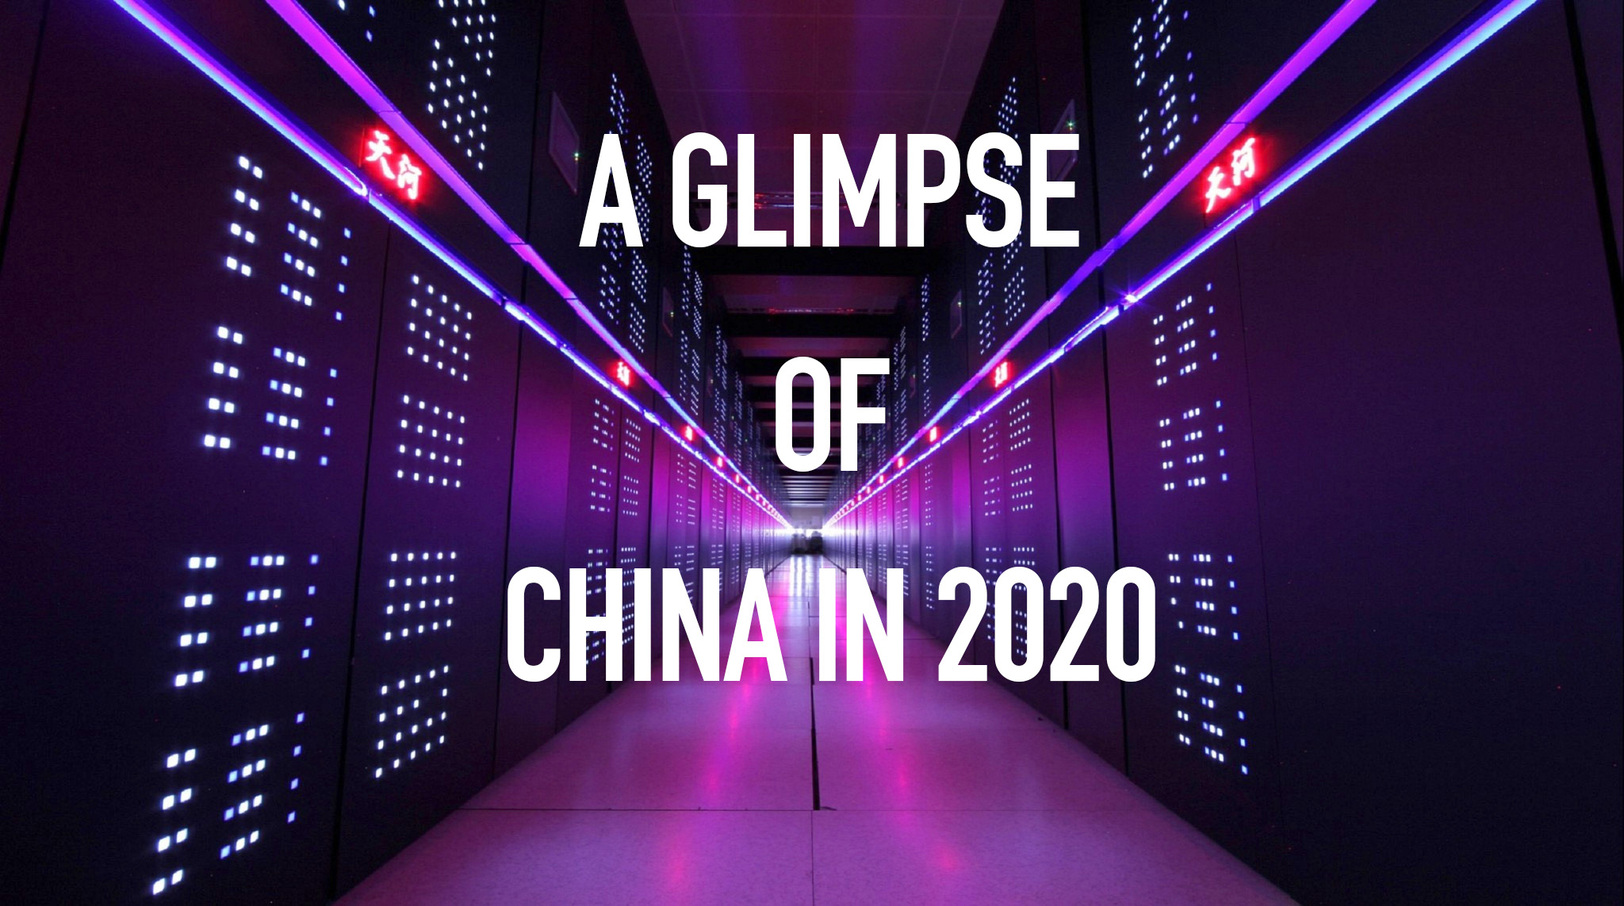 A glimpse of China in 2020